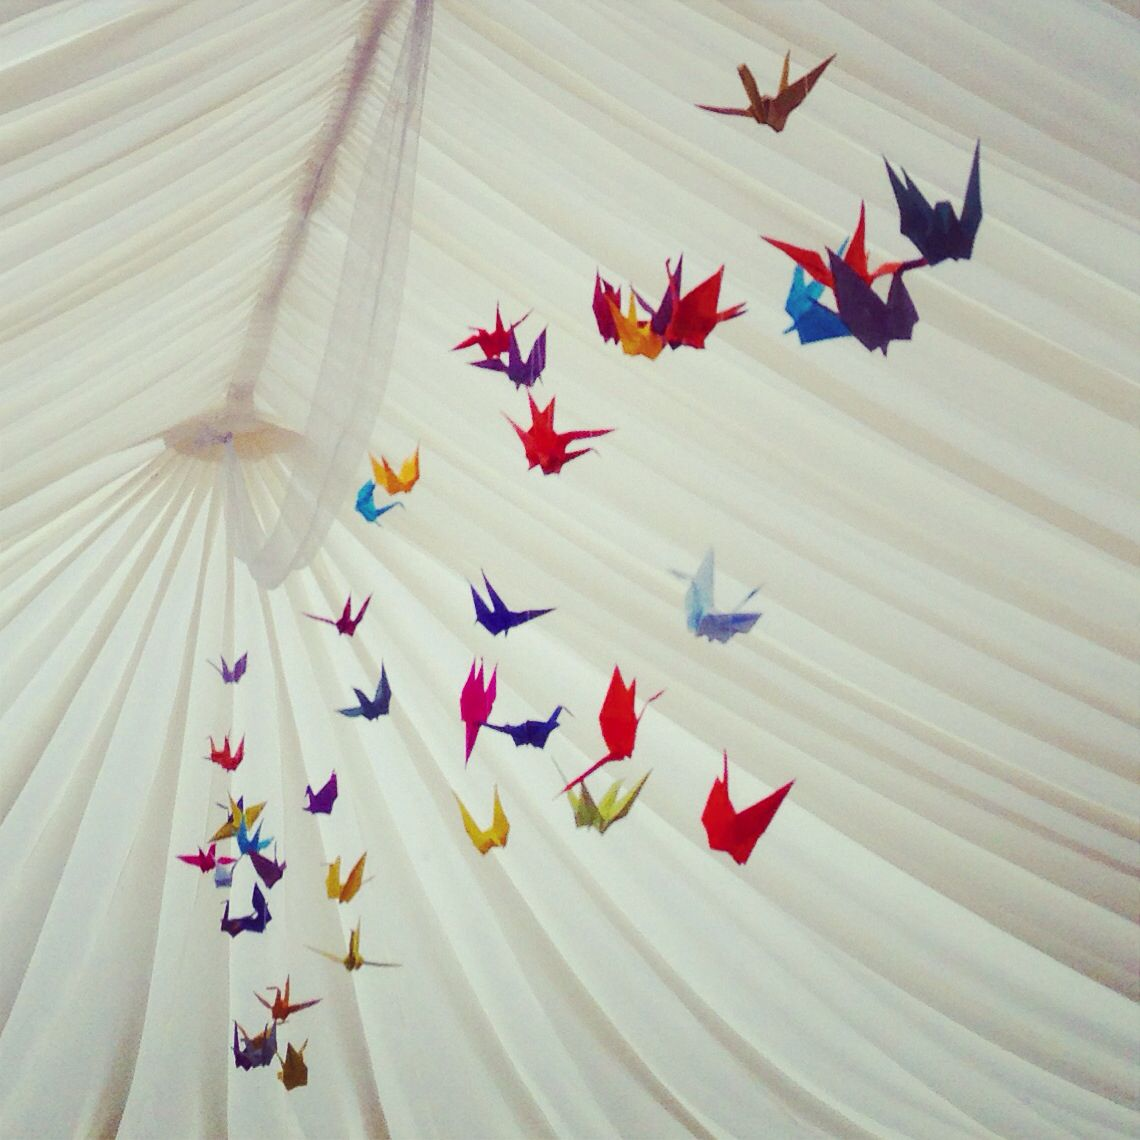 Origami birds wedding marquee decorations wedding pinterest wedding marquee decorations junglespirit